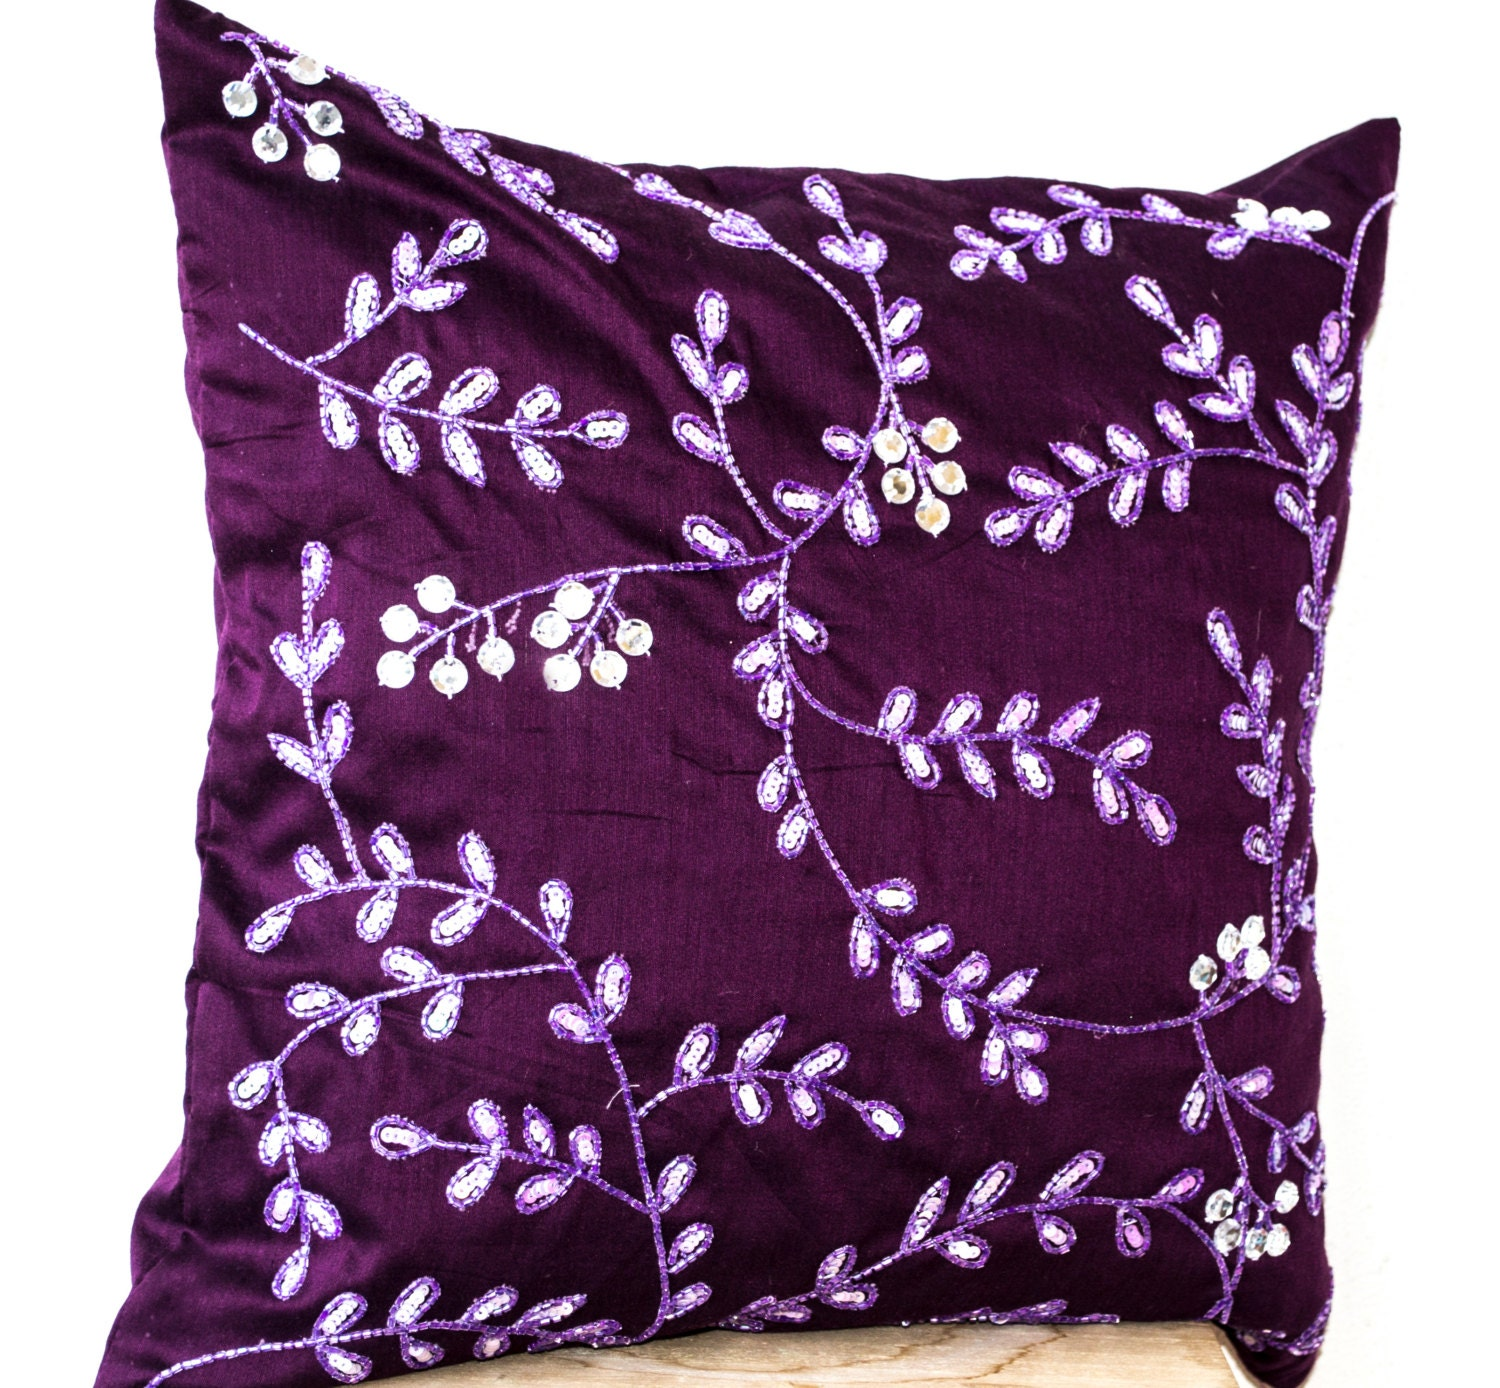 Decorative Pillows With Beads : Radiant orchid throw pillows bead sequin detail Leaves